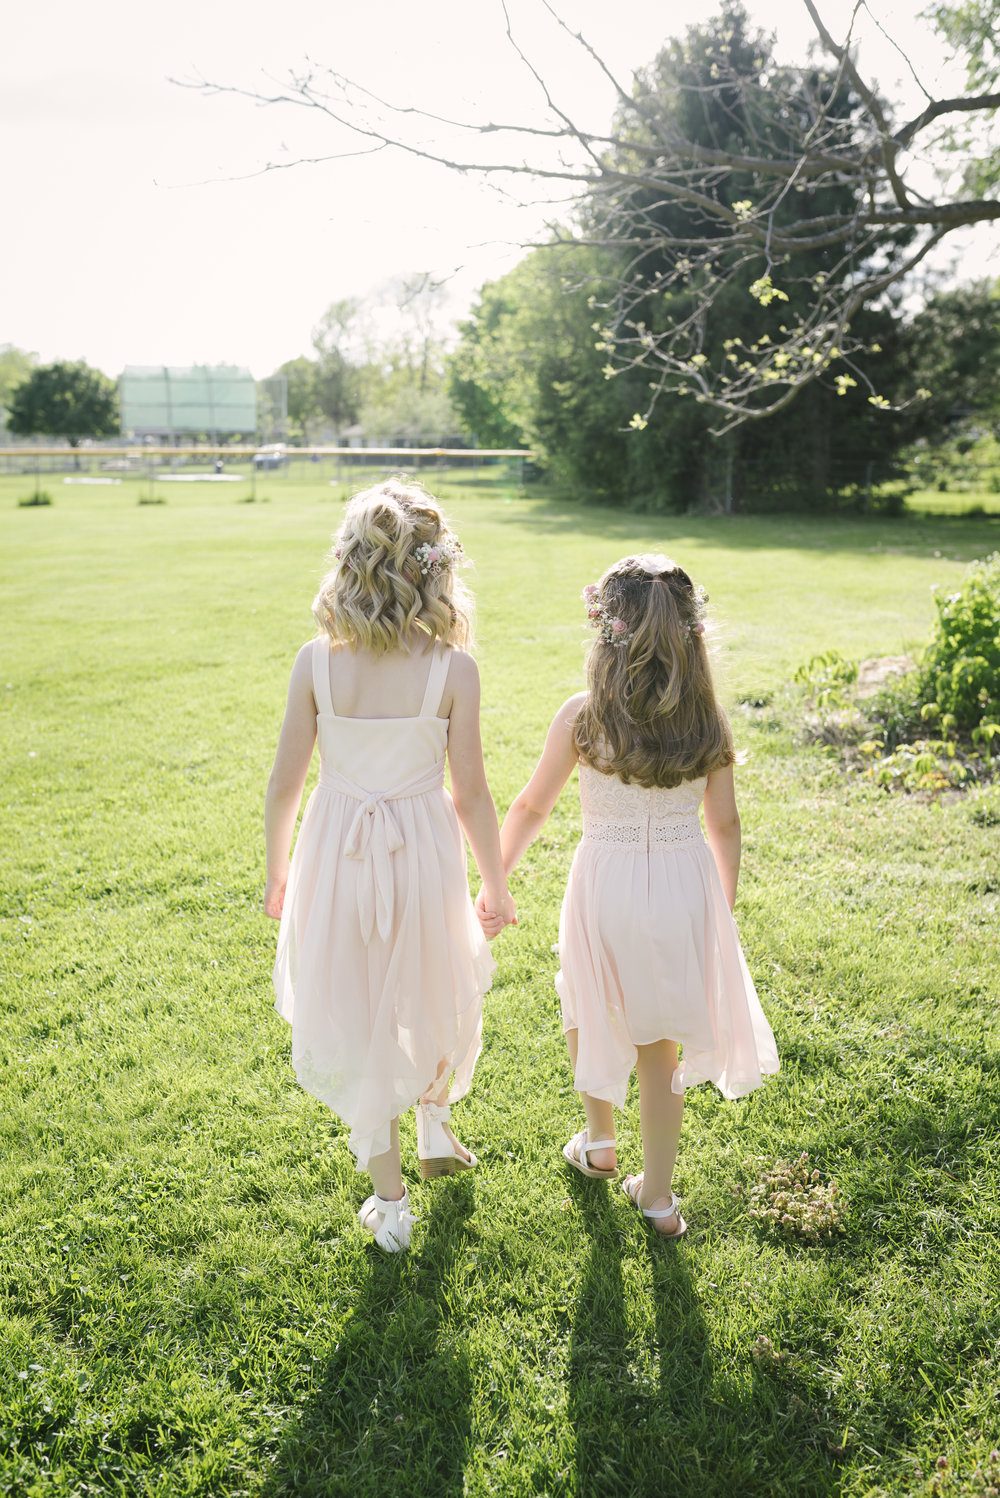 Flower girls walking for their photo debut